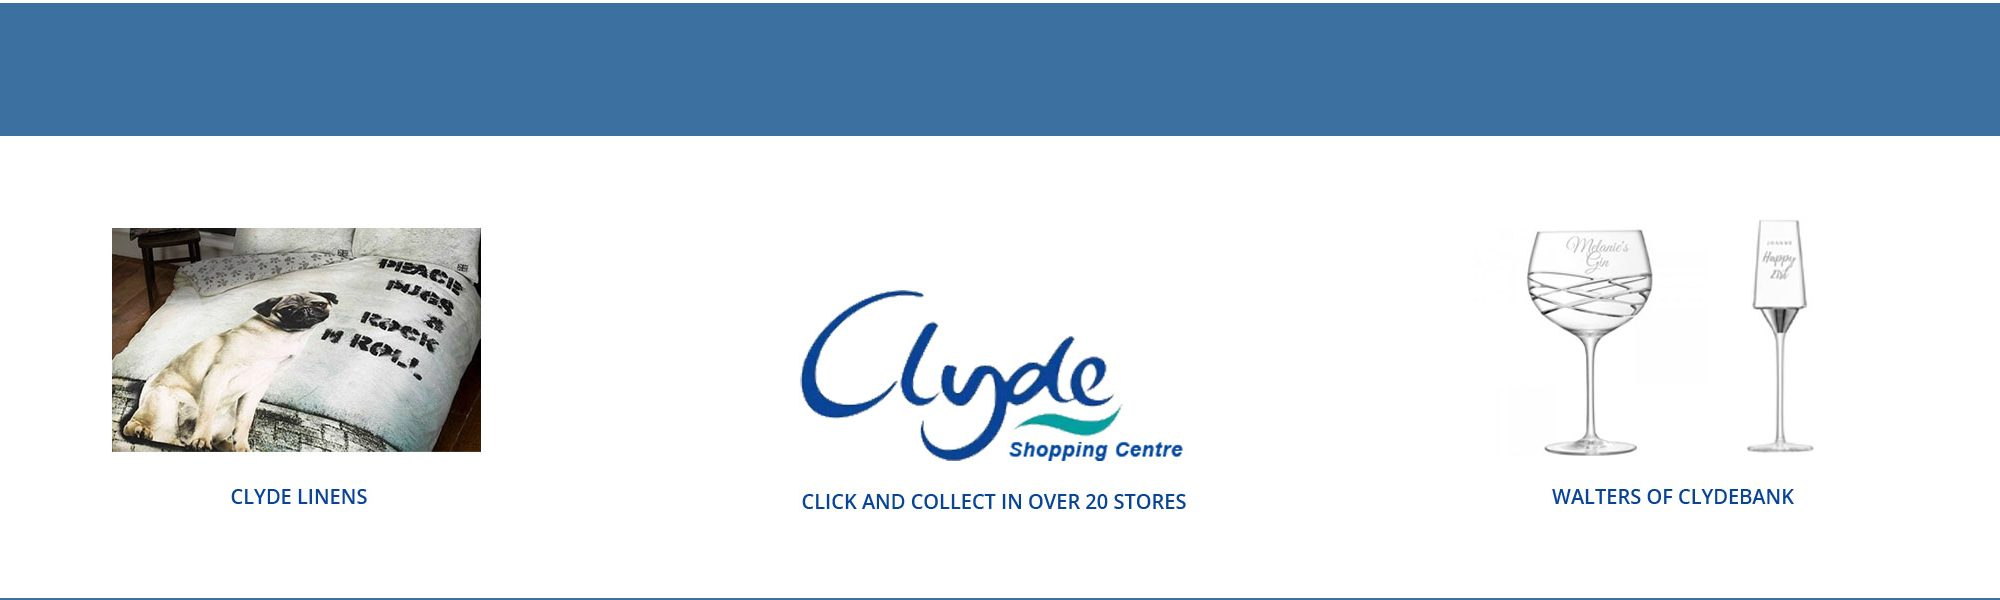 #ClydebankLovesLocal Click and Collect